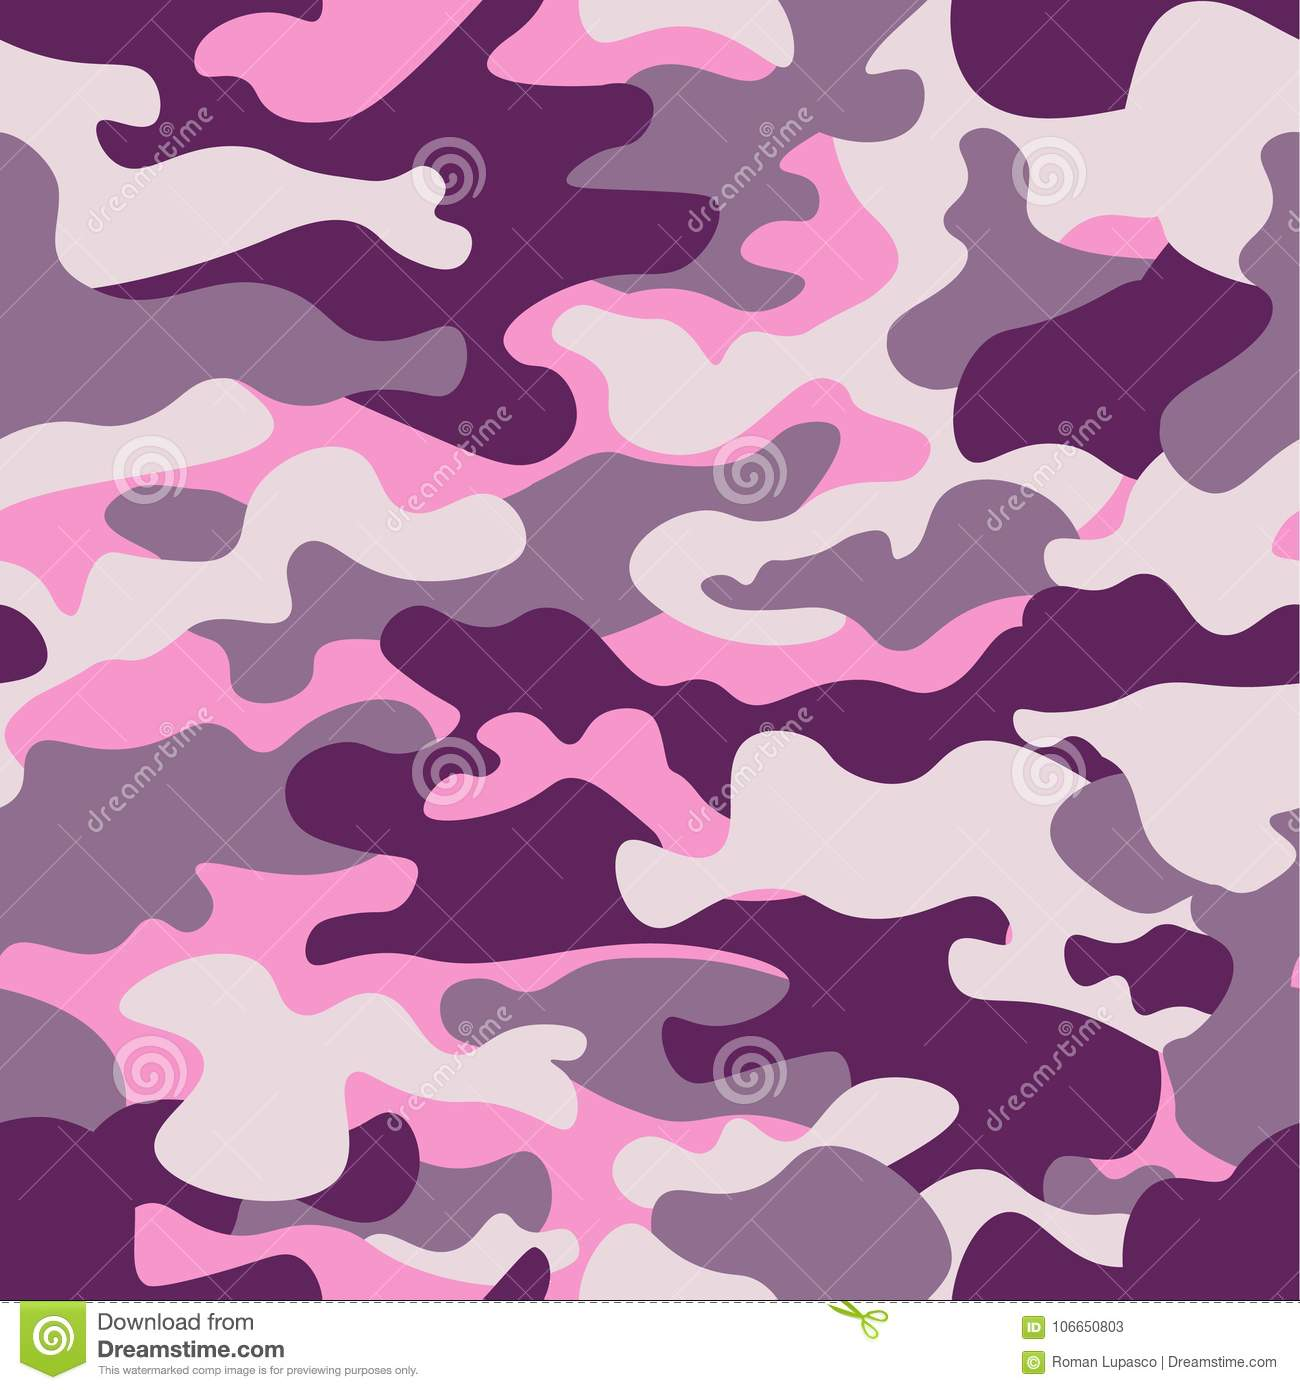 Military Camouflage Seamless Pattern Purple Monochrome Classic Clothing Style Masking Camo Repeat Print Ruby Colors Texture Design Element